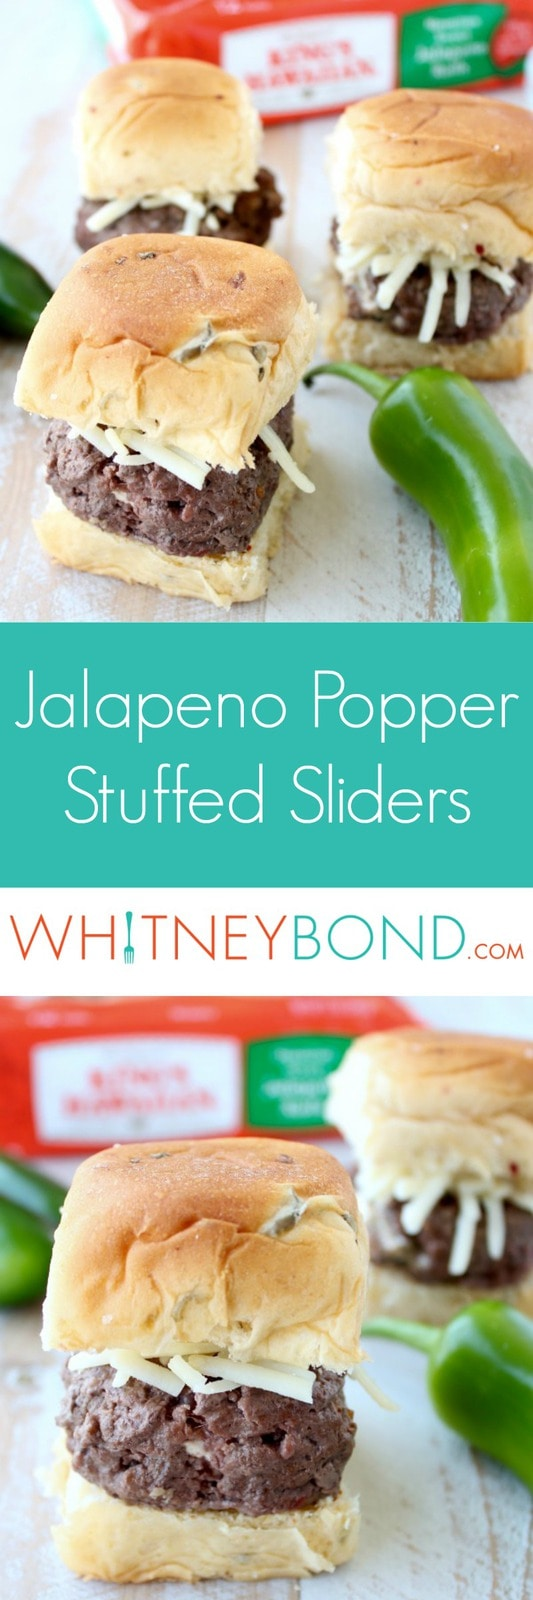 Jalapeno Popper Stuffed Sliders